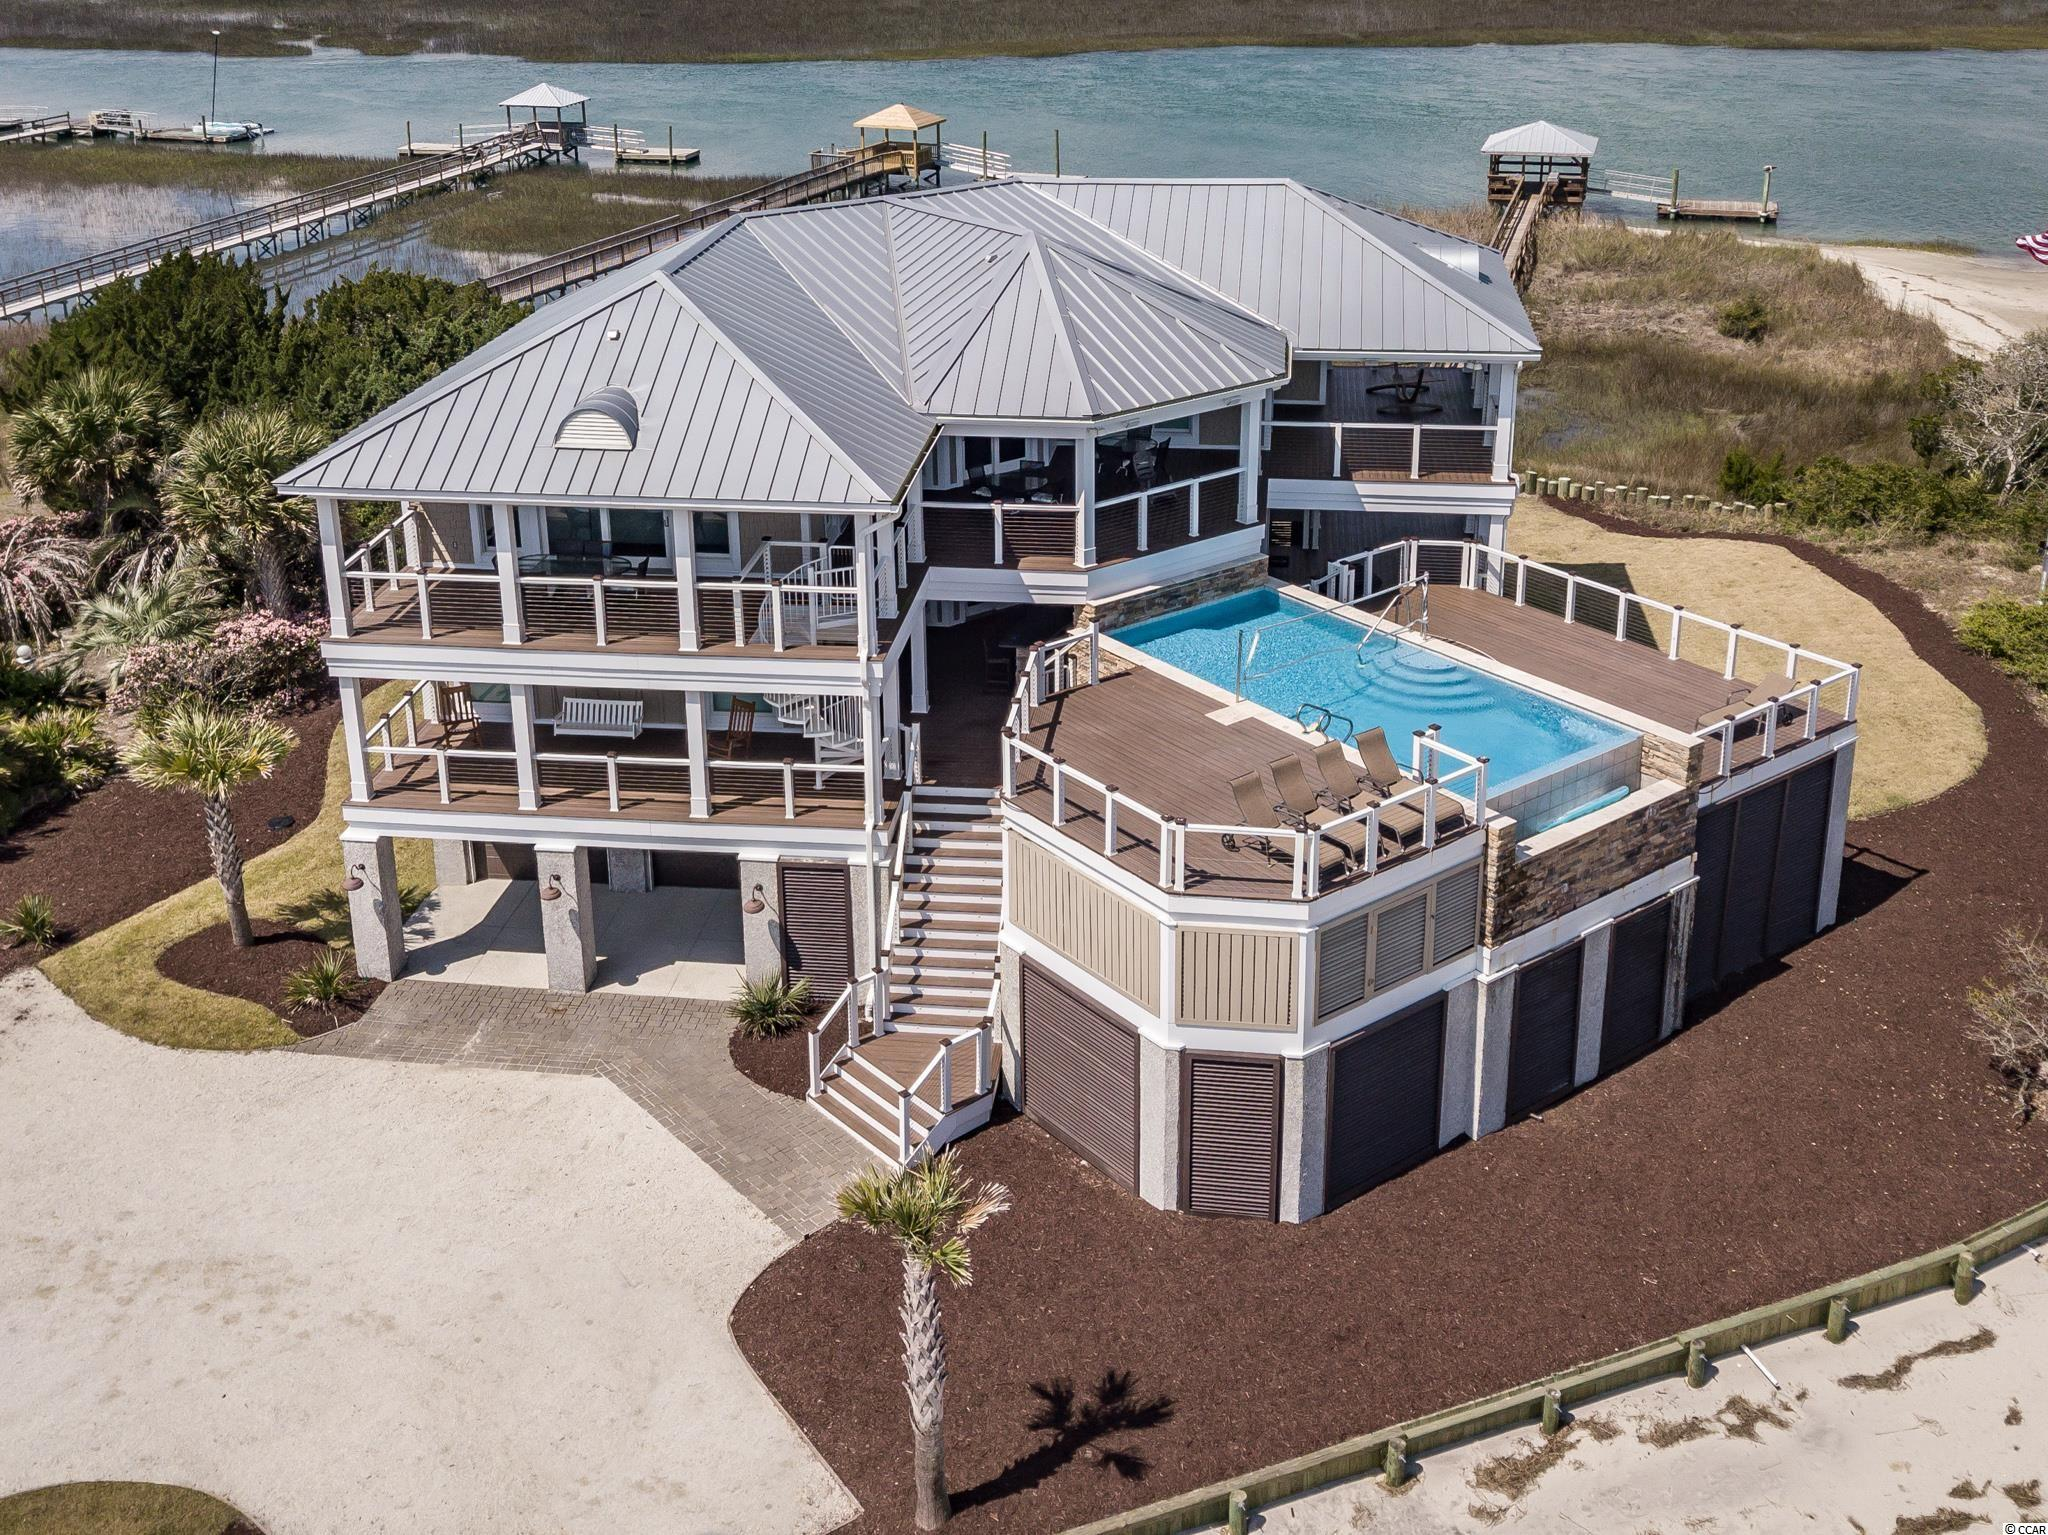 Decked Out, crowns the most northern gated tip of Pawleys Island, perfectly harmonizing with the surroundings while providing panoramic views of the Atlantic Ocean, Midway Inlet, Pawleys & Litchfield beach, and the lush Lowcountry marshlands.  A water lovers paradise, the oceanside elevated saltwater infinity pool and refreshing breezes beckon one to stop and relax in the moment. This exquisite and impeccably maintained residence, built in 2015, offers the finest in beach front living. It's 4,000 square feet of covered decks provide stunning and unique views of this magical location.  A spacious outside bar with 60 inch large screen TV and 2 pool decks is a focal point for entertainment. The heated infinity pool with stacked stone waterfall is just steps from the beach while the private covered and floating dock provides easy entry to Pawleys Creek. Inside, the reverse, open floor plan includes rustic hickory floors, a gourmet kitchen with stainless steel appliances, a wine fridge, ice maker and quartz countertops. The kitchen and dining area blends comfortably with the family room while the large Andersen hurricane impact windows with oversized sliders provide fabulous natural light and wonderful views throughout the home.  This fully furnished, six-bedroom home sleeps 16. Additional features include surround sound wired inside and out, gas log fireplace, Trex decking, pool floor deck misters for added comfort, stainless steel cable railings, metal roof and full service elevator. The ground floor garage is spacious and allows multi use capability for vehicles, boats, golf carts and even a recreational game area. Boasting more than 2-acres of beach and creekfront access, this stunning location with built in seawall offers deep water entry for boating, fishing, crabbing, kayaking paddle boarding, birdwatching, stargazing and of course unparalleled sunrises and sunsets. House also comes with built in rental revenue for 2022. Previous rental history available upon requ